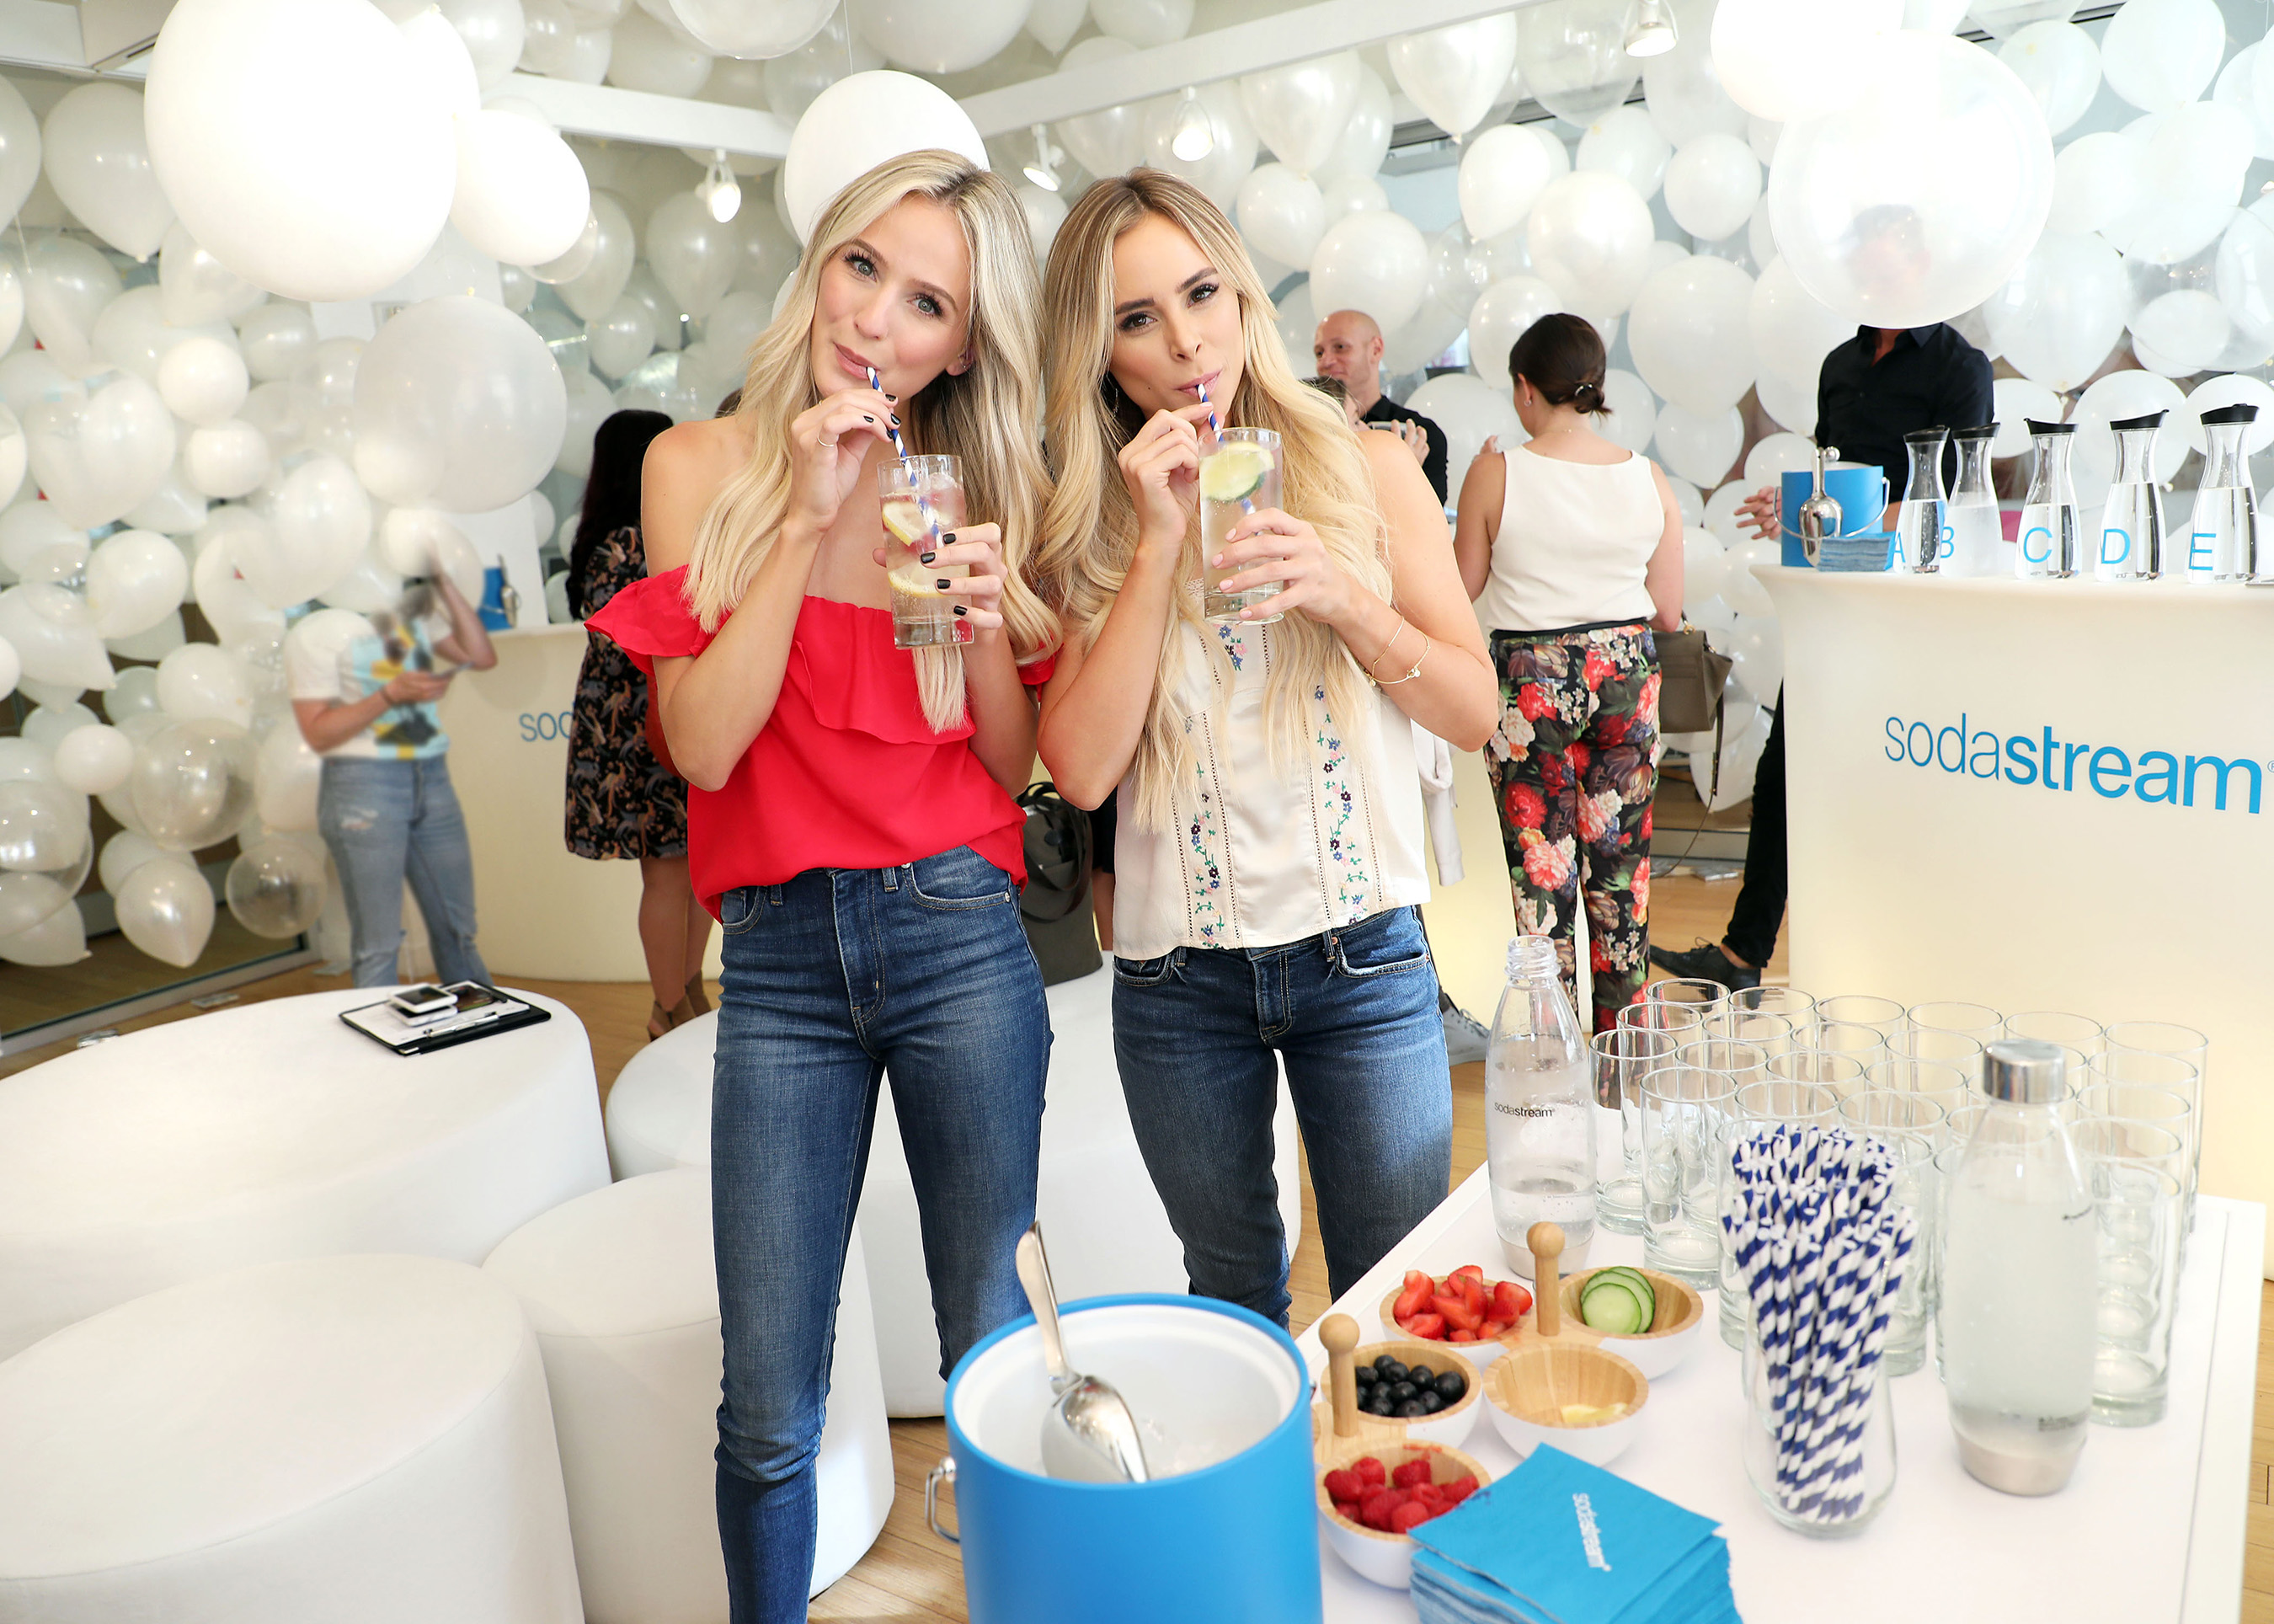 Lauren Bushnell and Amanda Stanton sip SodaStream